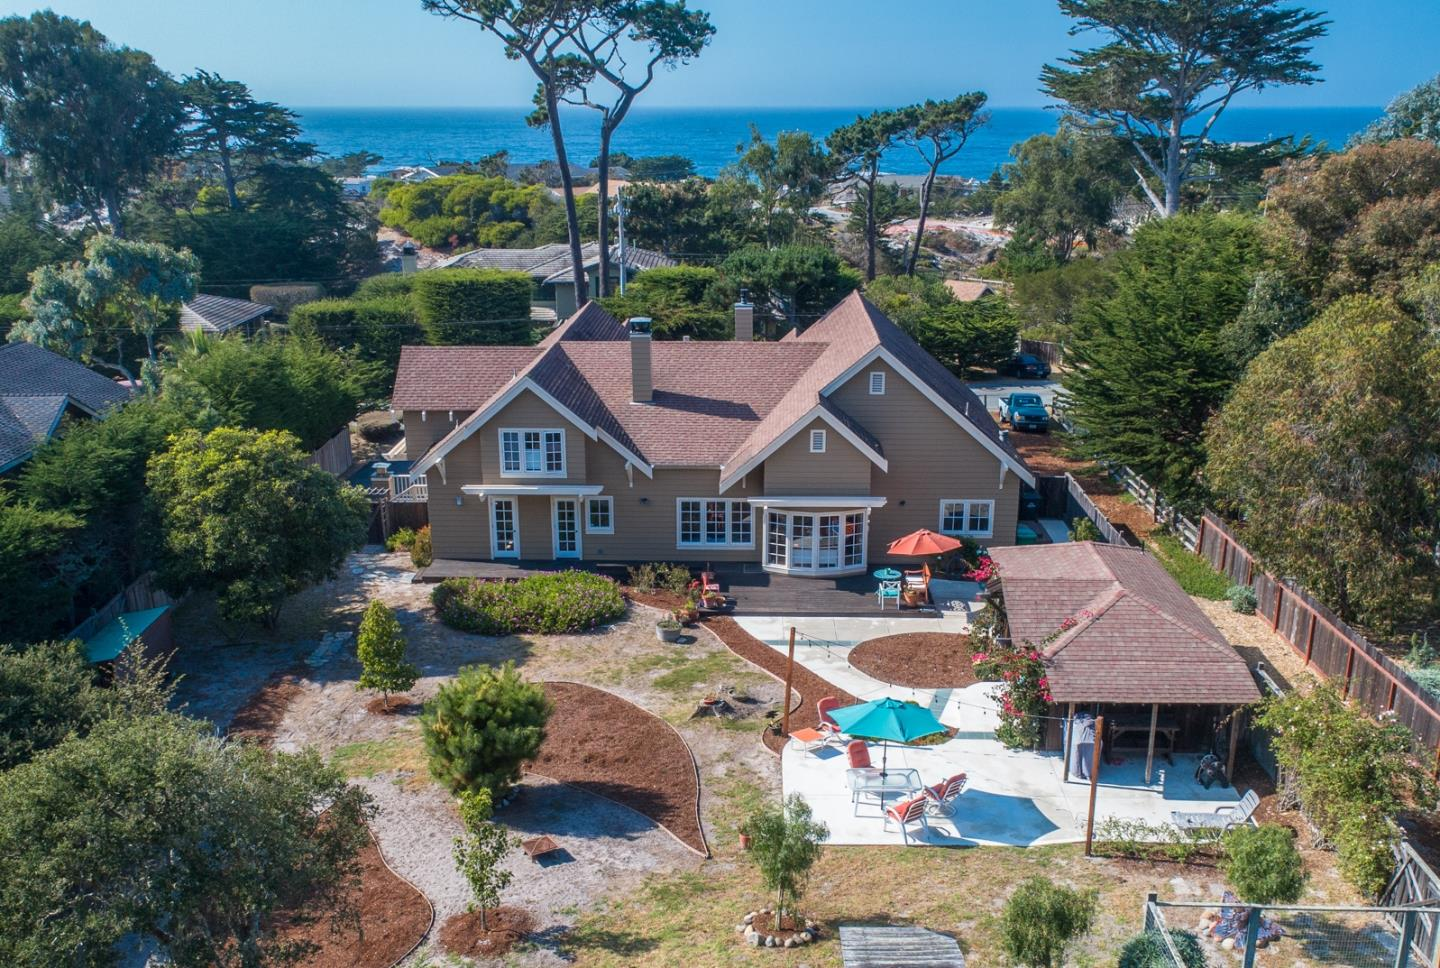 Single Family Home for Sale at 415 Asilomar Boulevard 415 Asilomar Boulevard Pacific Grove, California 93950 United States